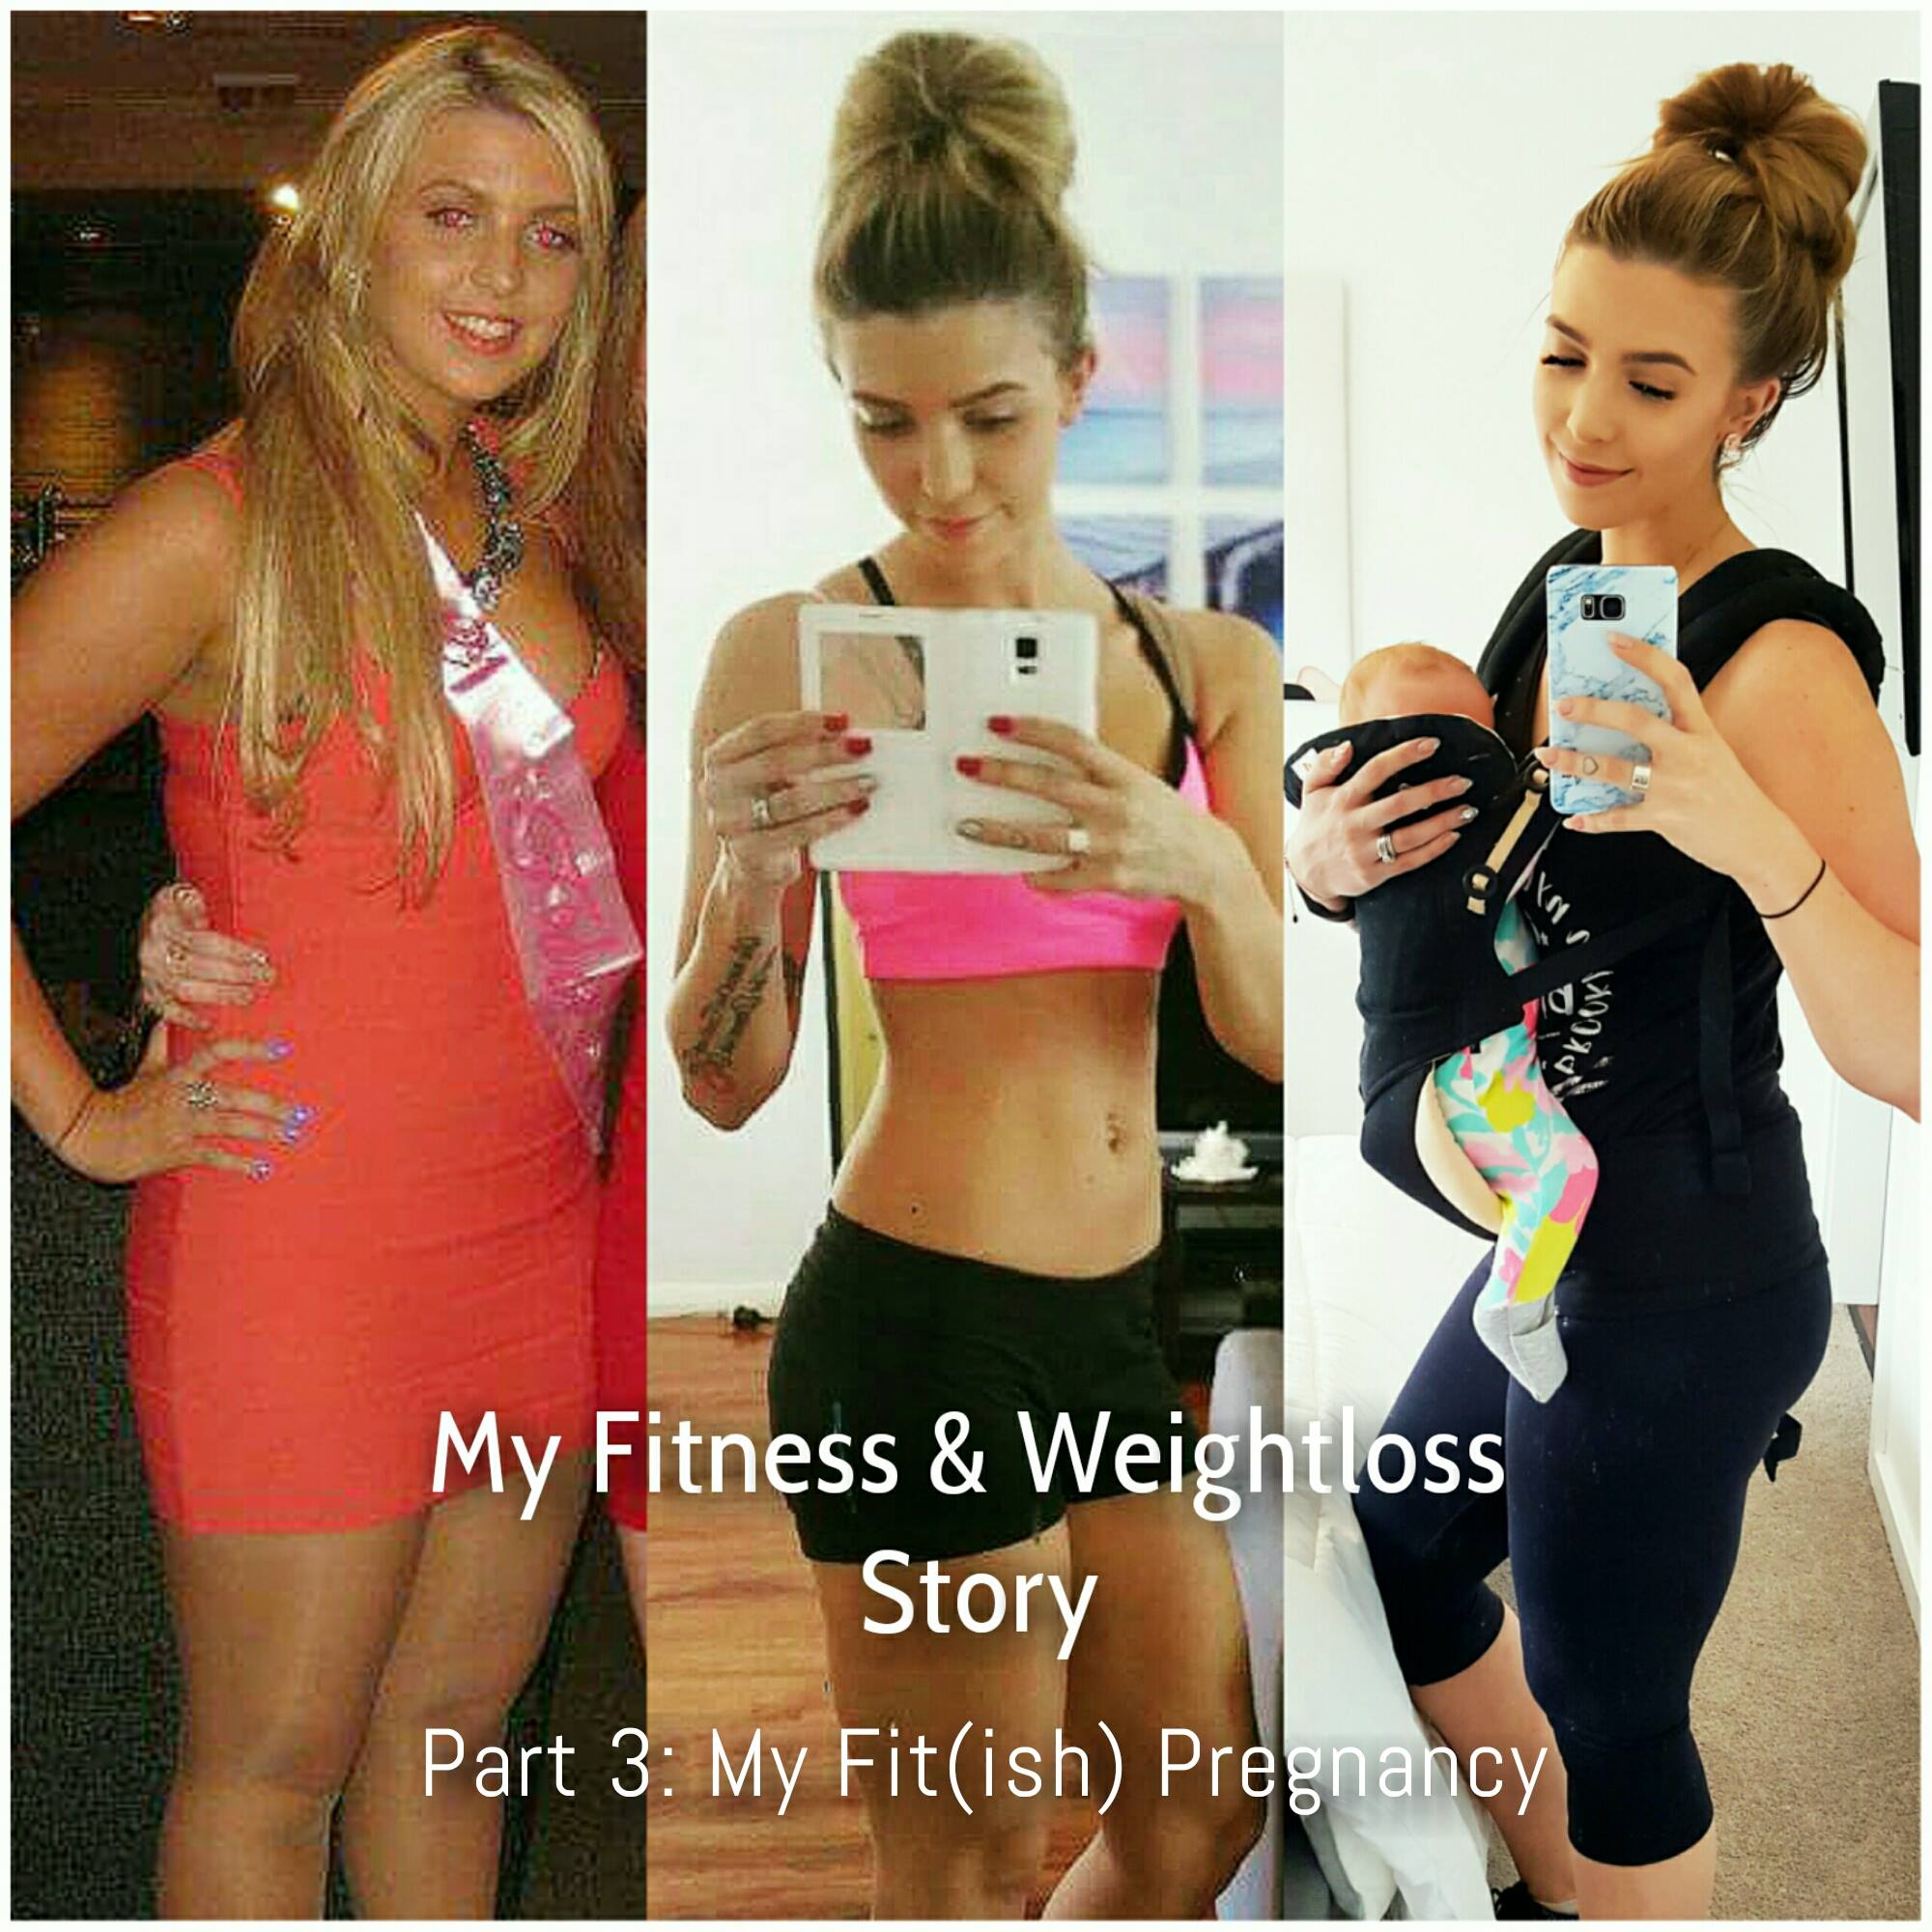 My Health & Fitness Journey: My Fit(ish) Pregnancy